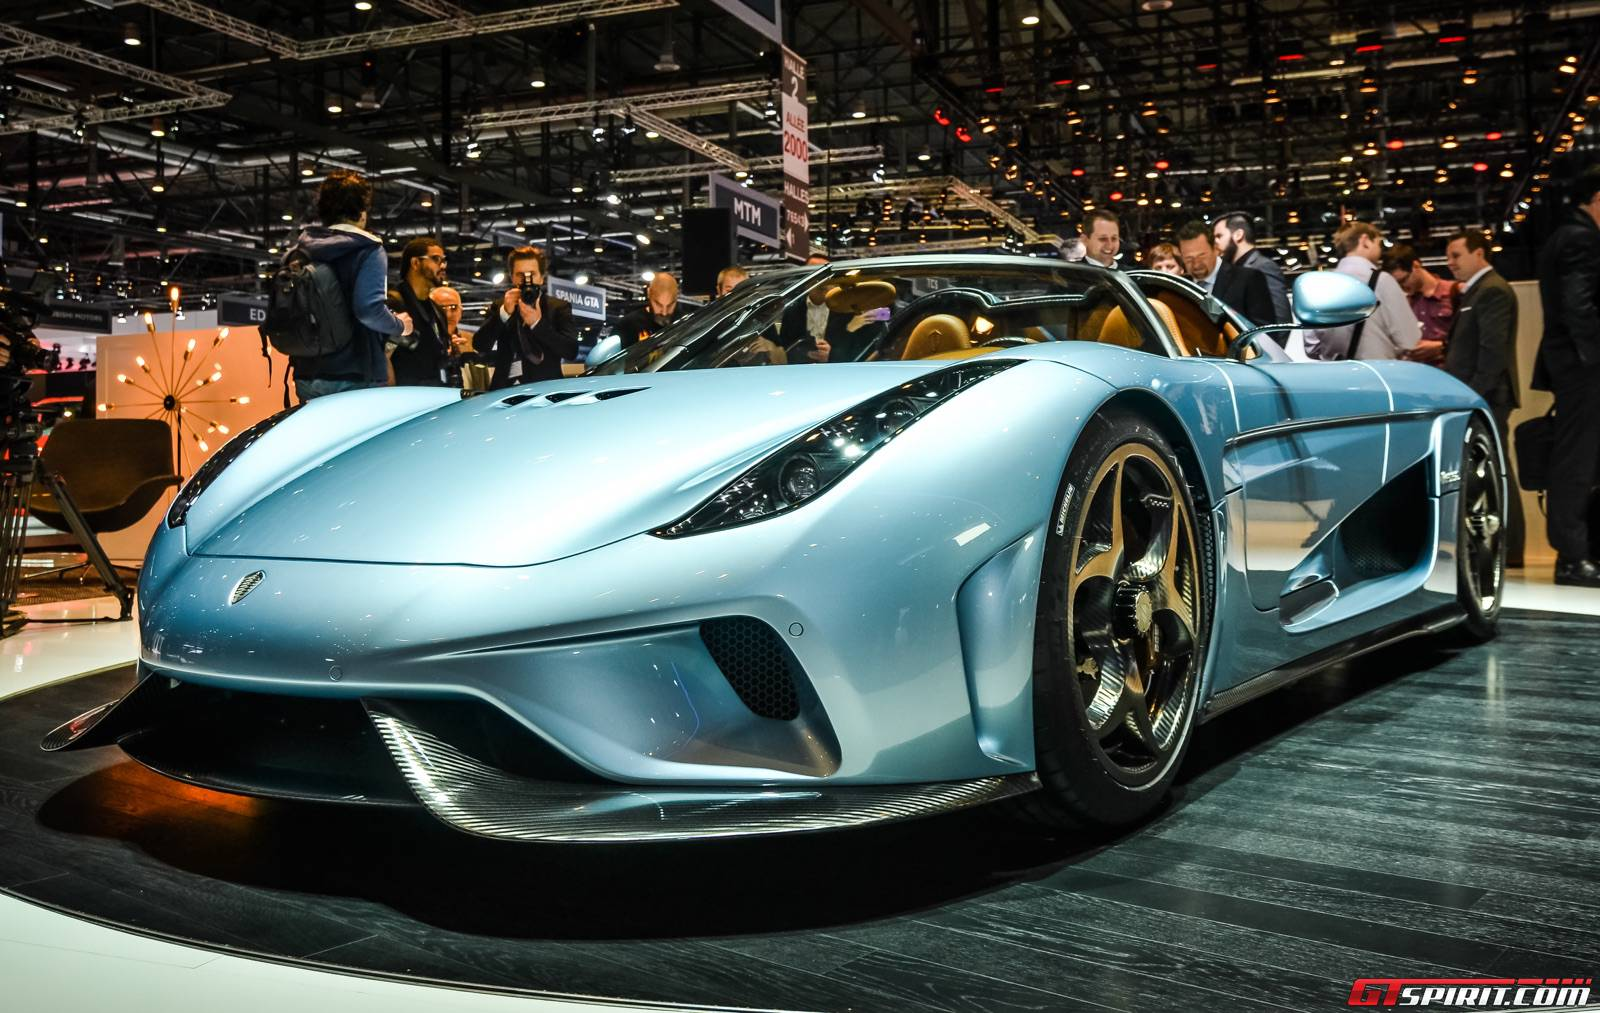 Koenigsegg Regera 2018 >> Koenigsegg Dealer Lists Regera For Sale at €2.1 Million - GTspirit